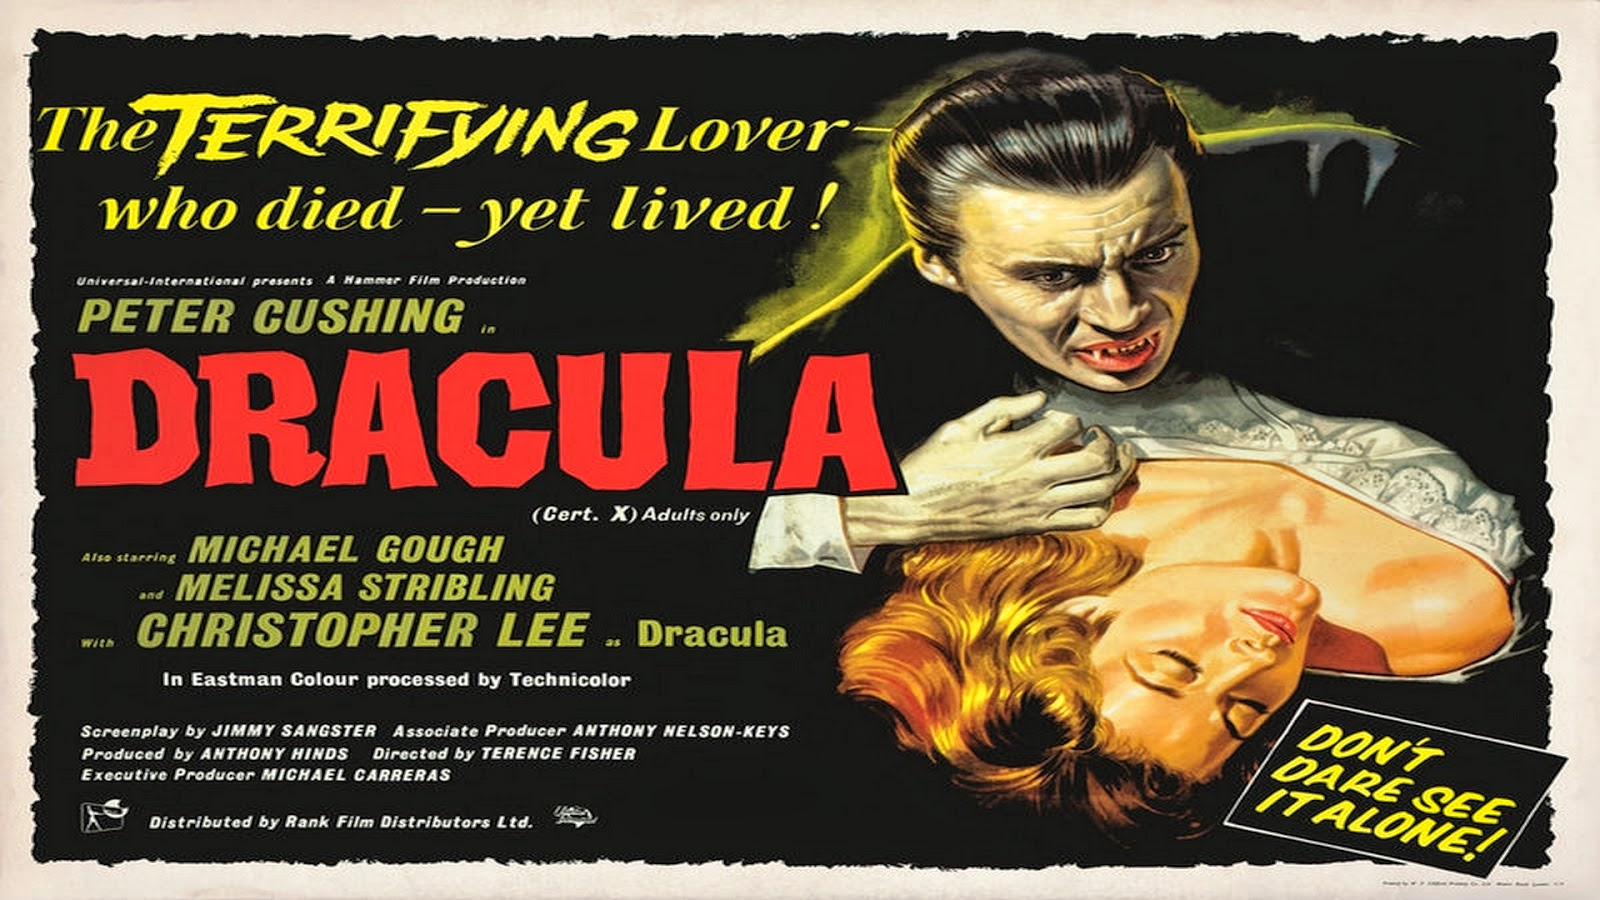 dracula sex essay Essay on dracula (things to motivate you to do your xavier essay about genetically modified crops disadvantages philosophical essays yale reverse discrimination persuasive essay gwu mba essays 2016, single-sex education pros and cons essay anthropological effect essay person property.